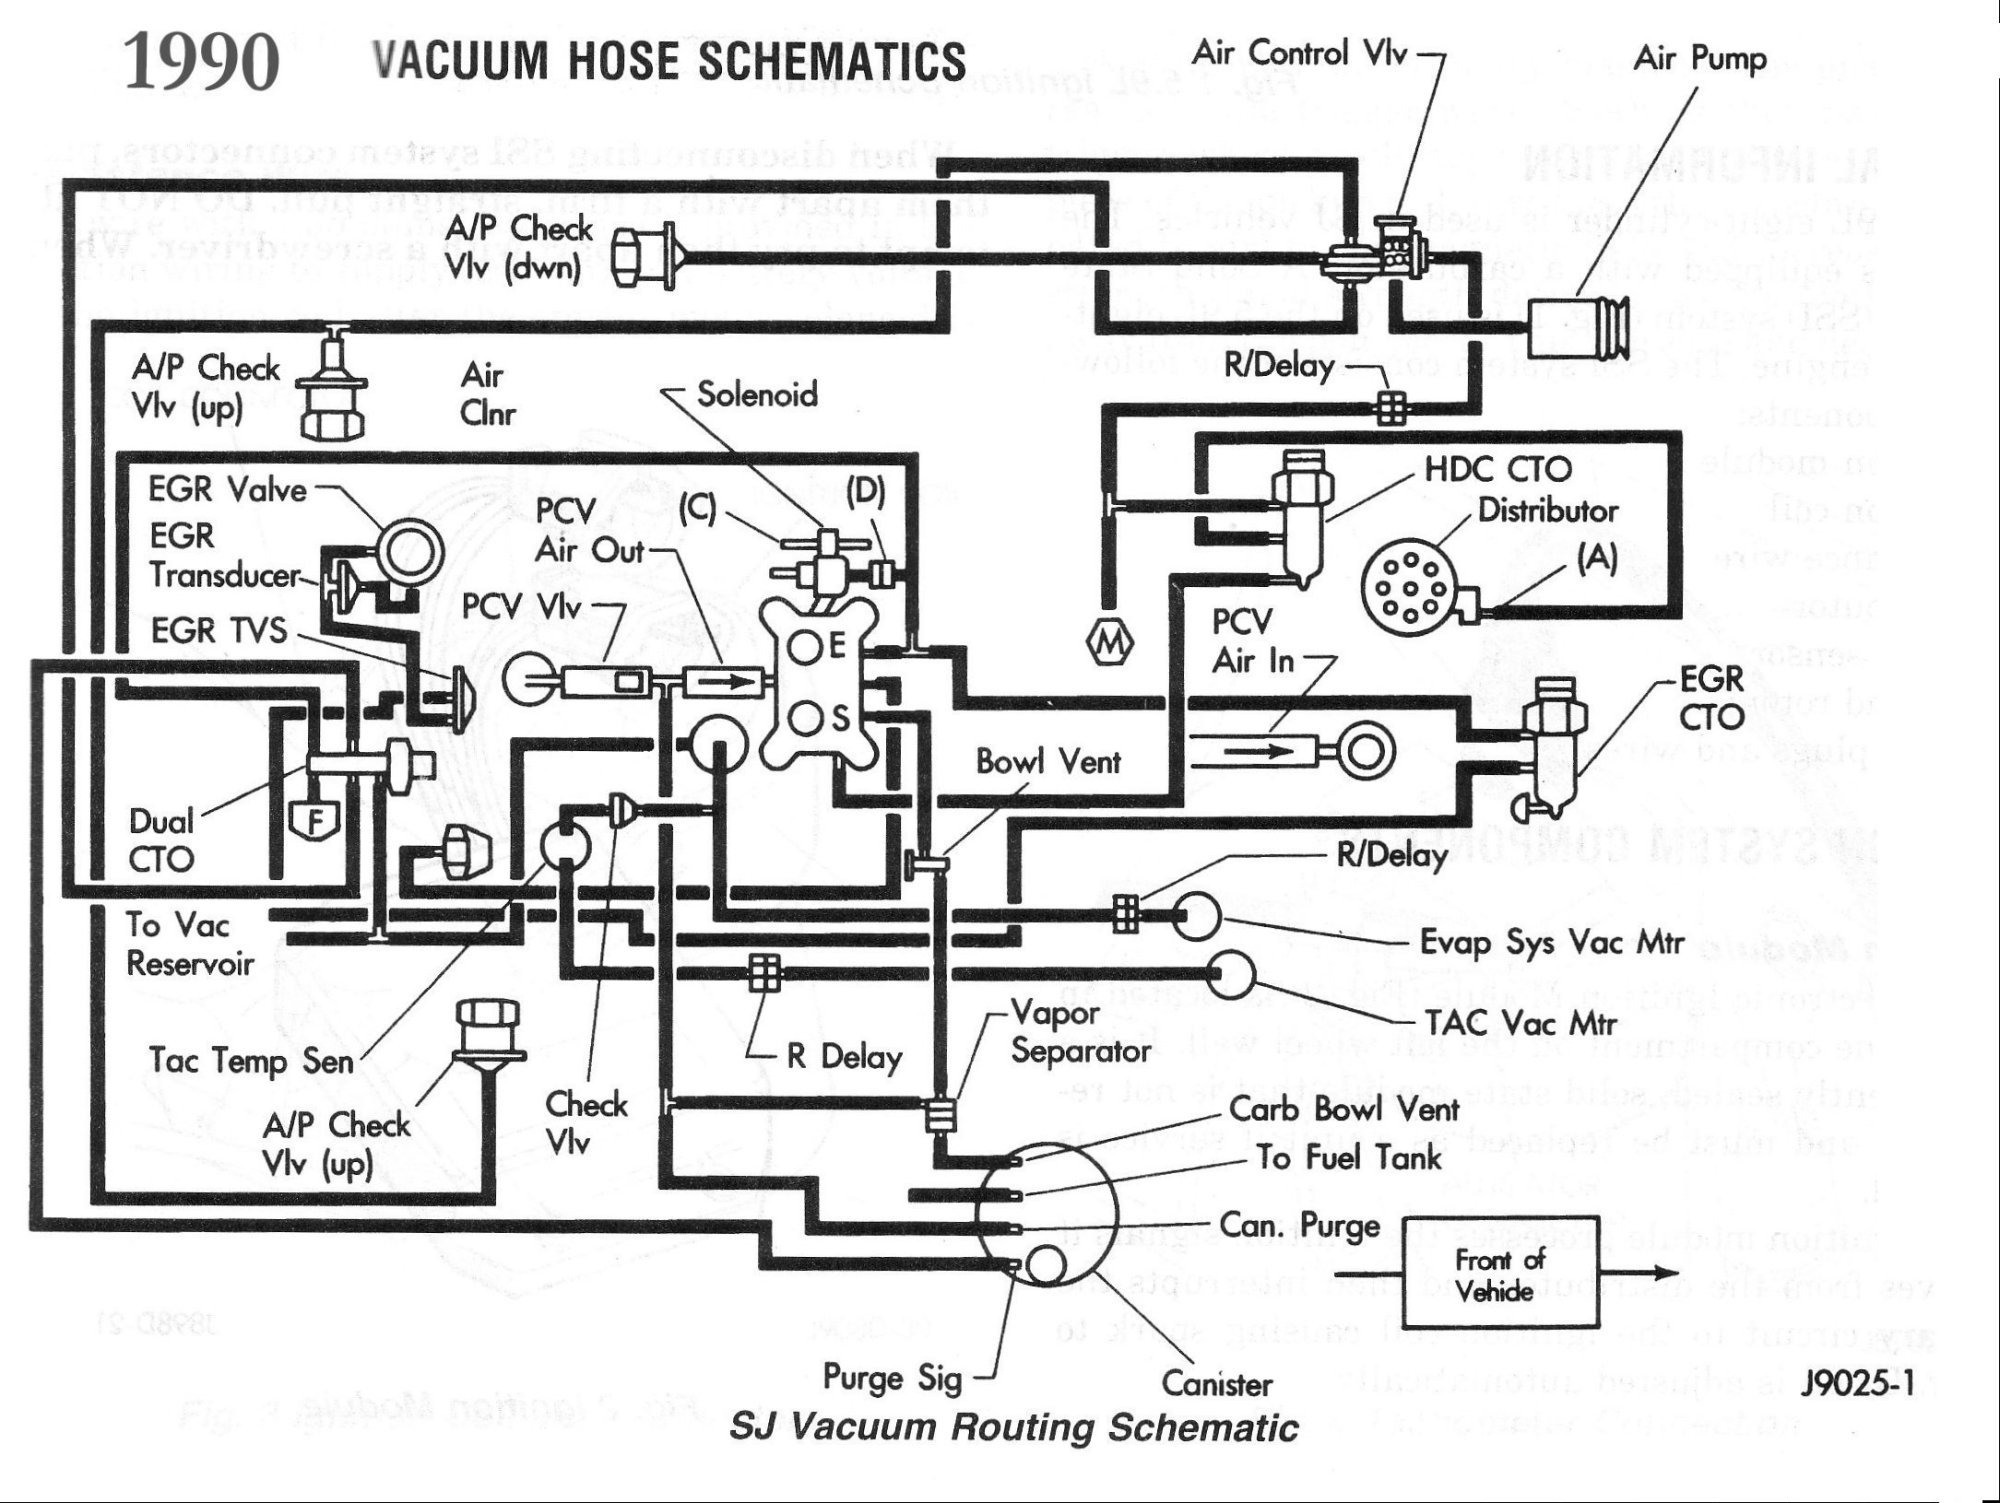 hight resolution of jeep vacuum line diagrams wiring diagram new 1990 jeep wrangler vacuum line diagram